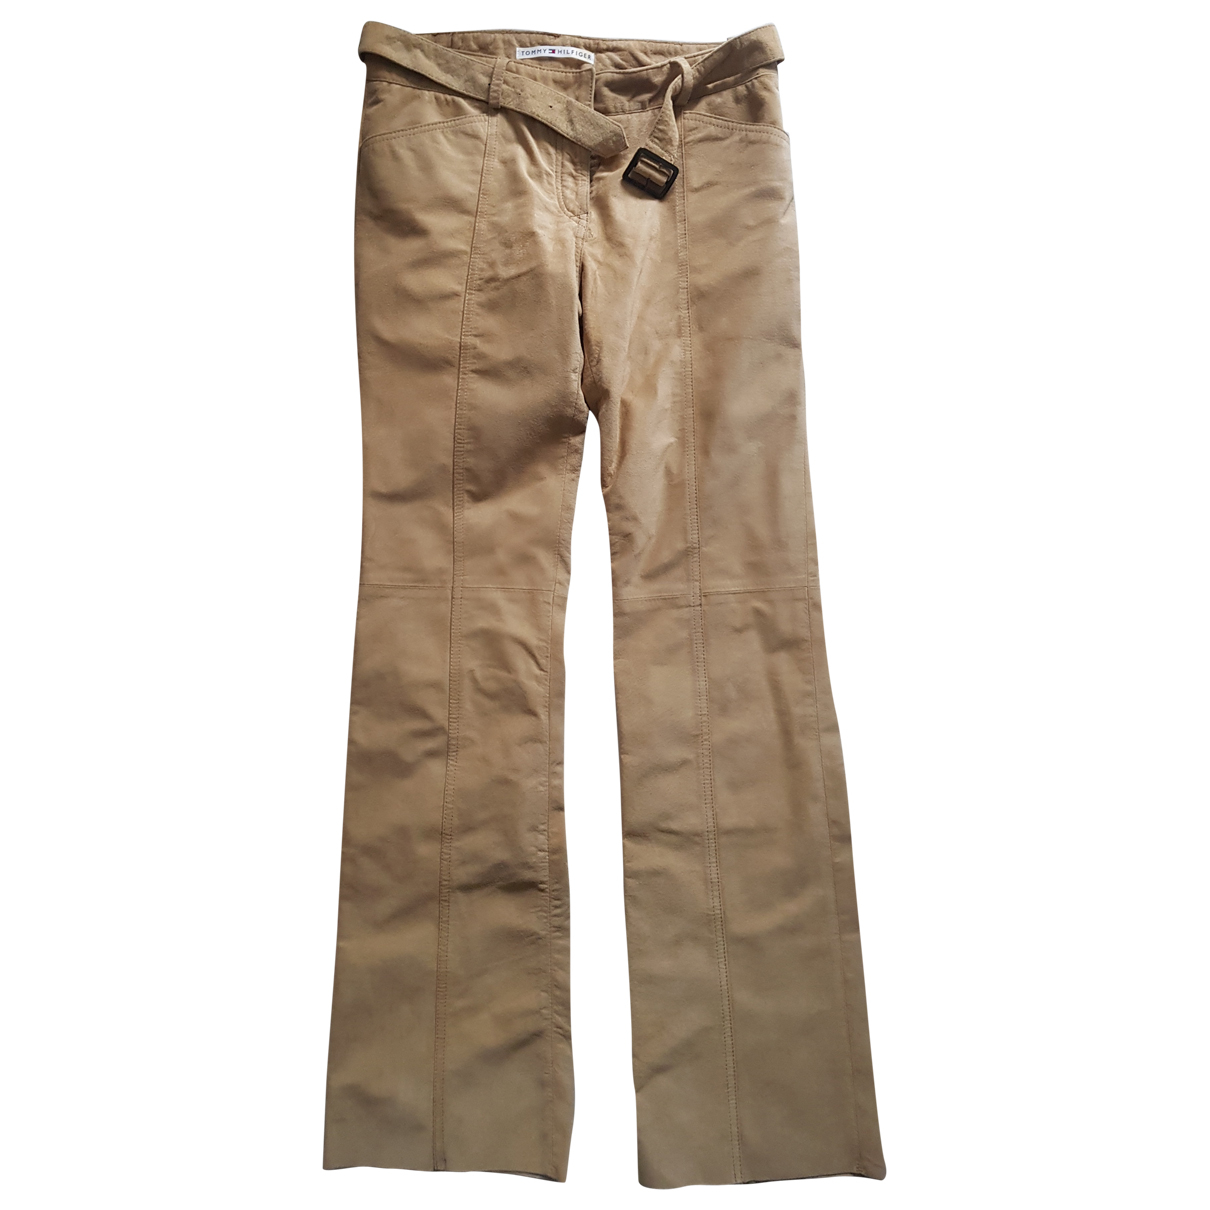 Tommy Hilfiger N Beige Suede Trousers for Women 6 US